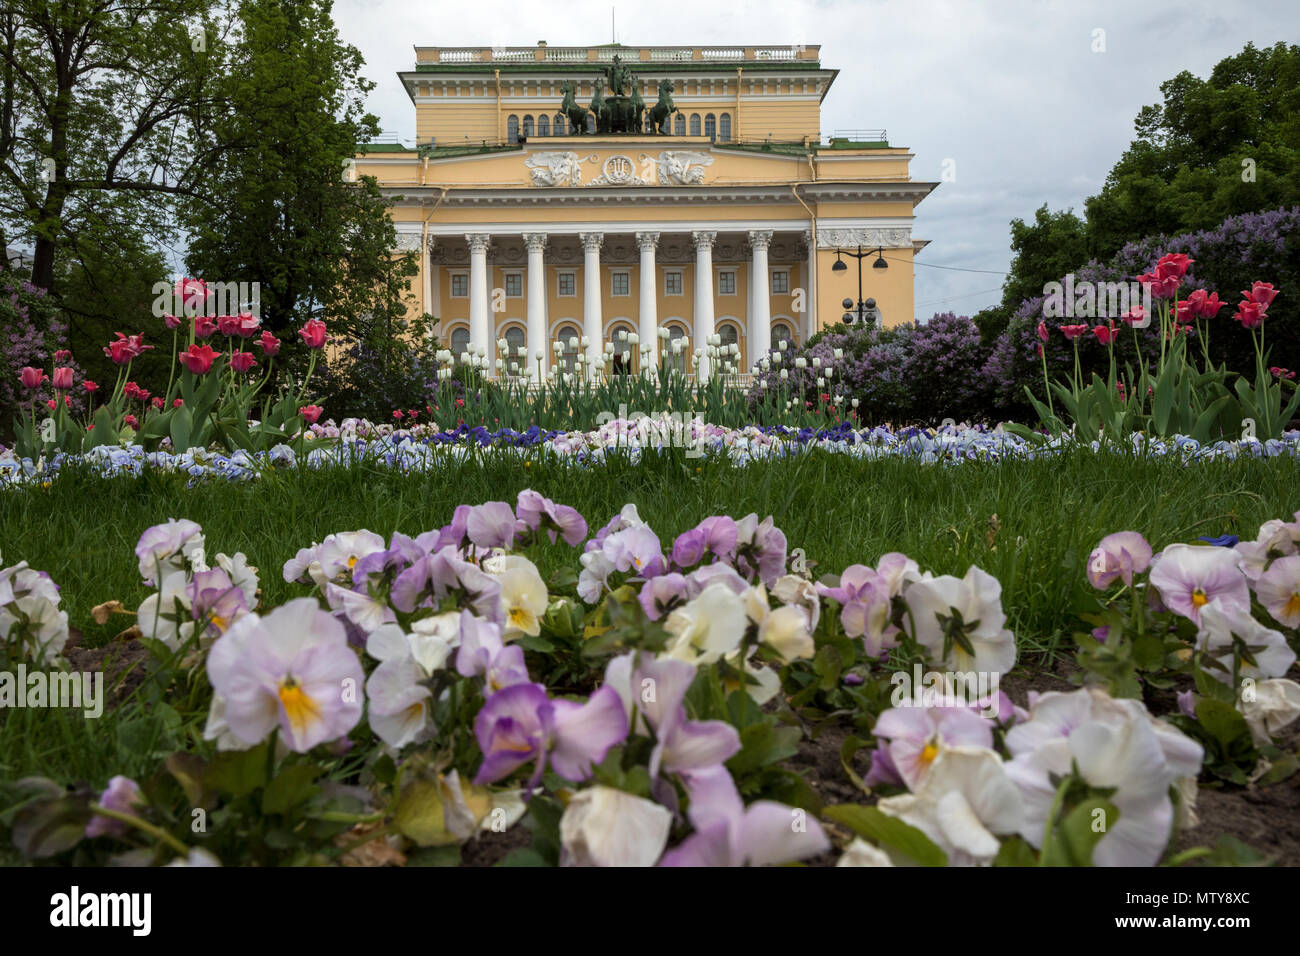 Flowerbed on Ostrovsky Square and the facade of the Alexandrinsky Theater in the city center of St. Petersburg, Russia - Stock Image